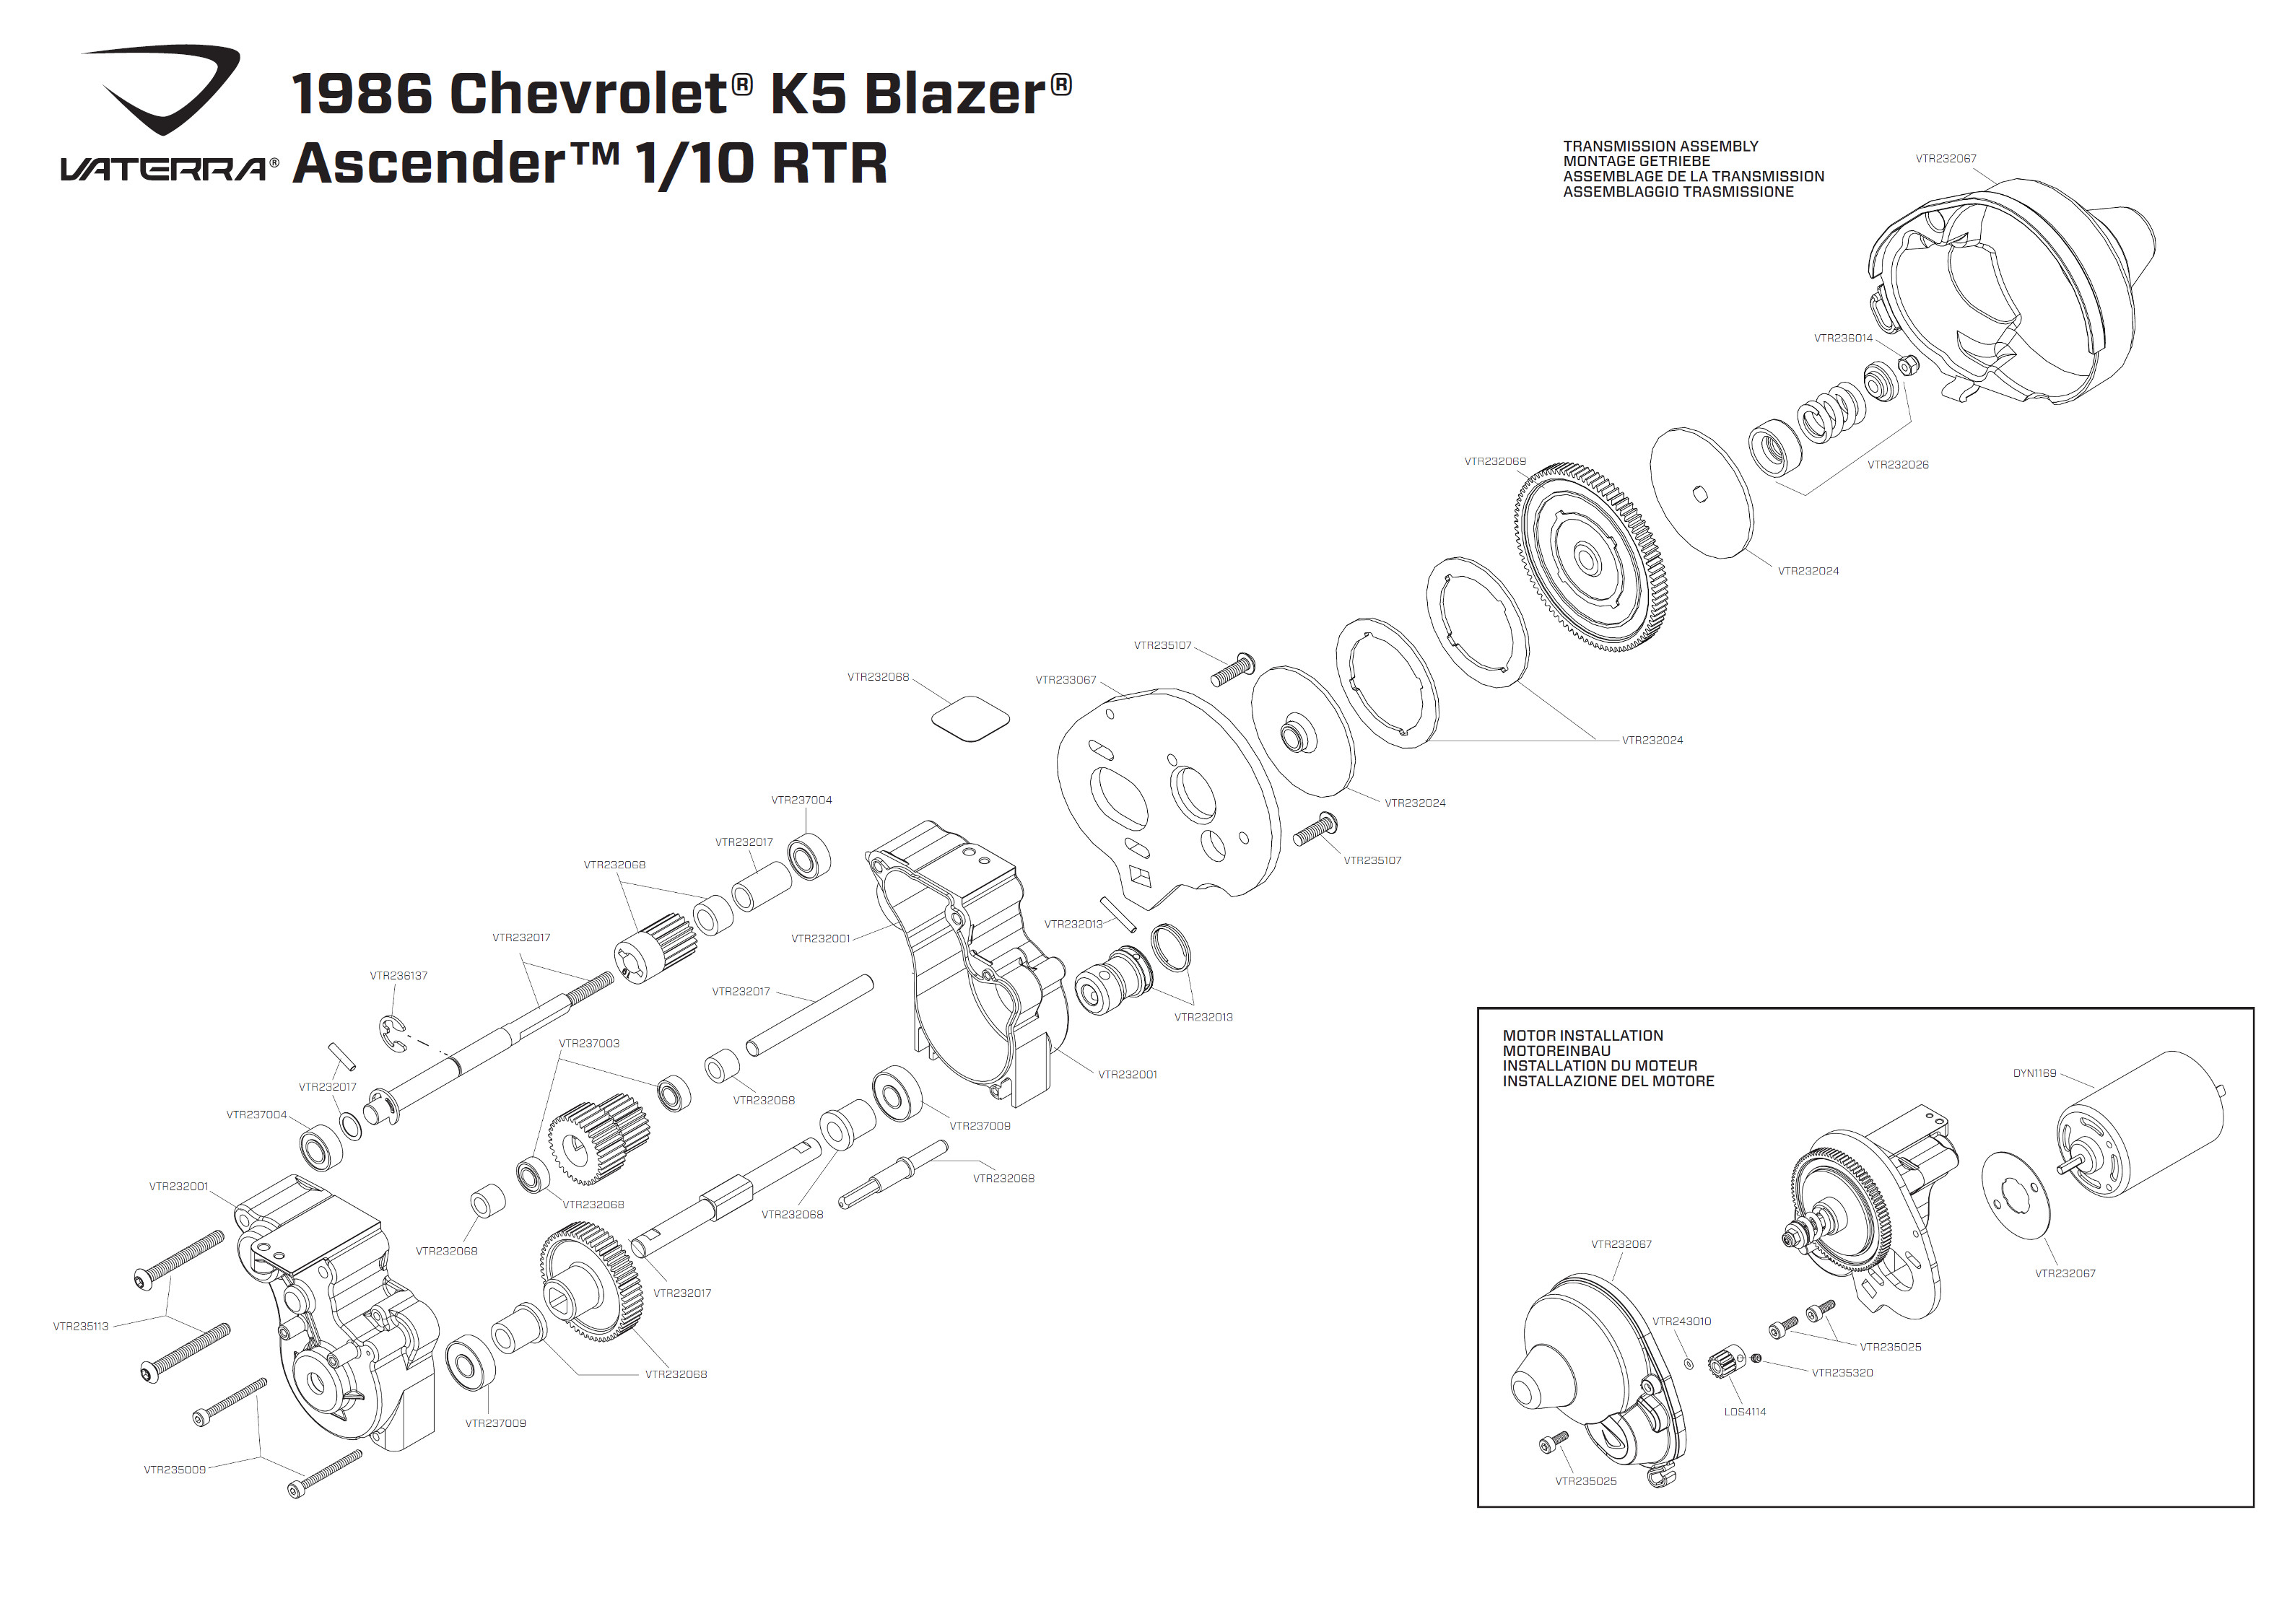 Exploded View Vaterra Chevrolet K 5 Blazer Ascender 110 4wd Rtr 1986 Chevy Transmission Wiring Diagram